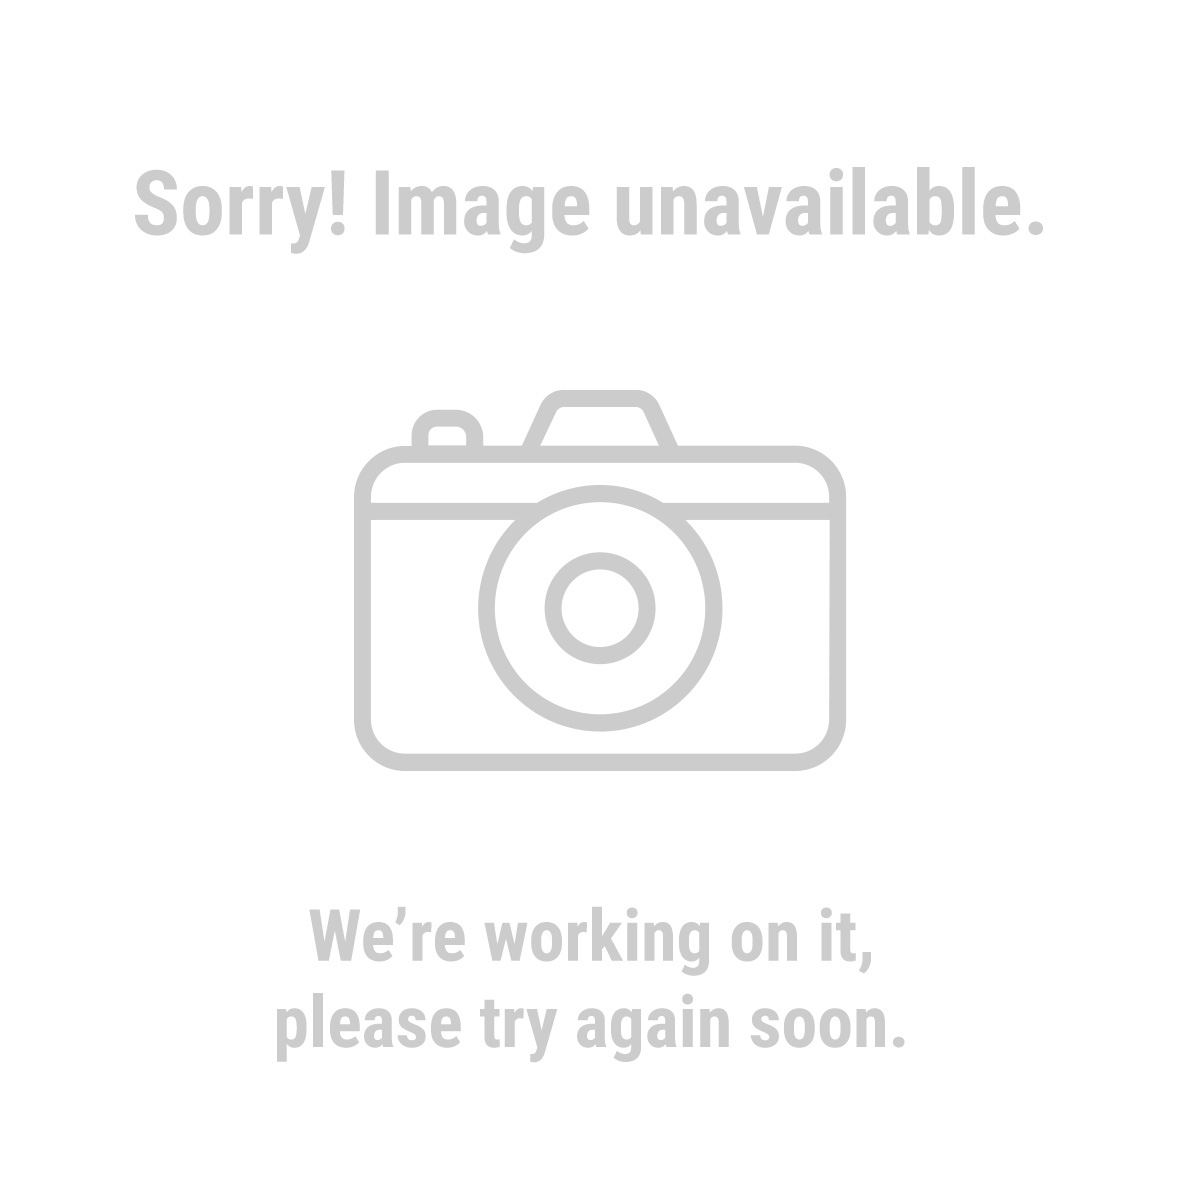 Industrial Oxygen and Acetylene Welding Kit